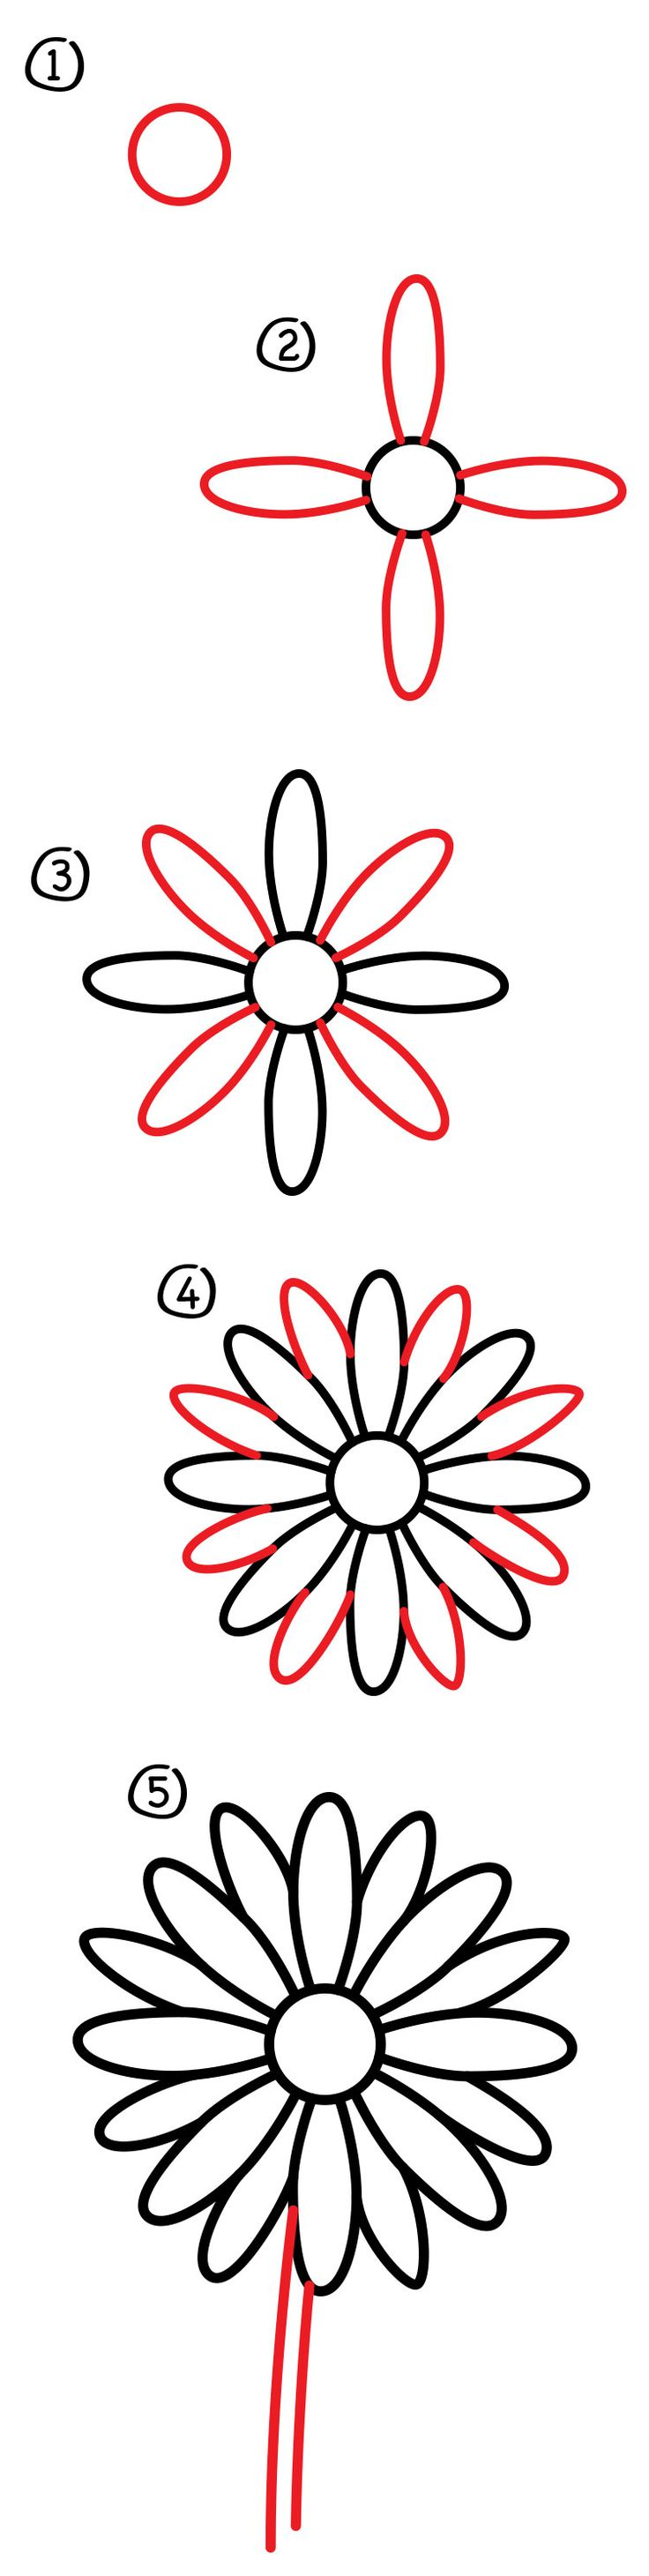 Learn How to Draw a Flower with an Easy Tutorial